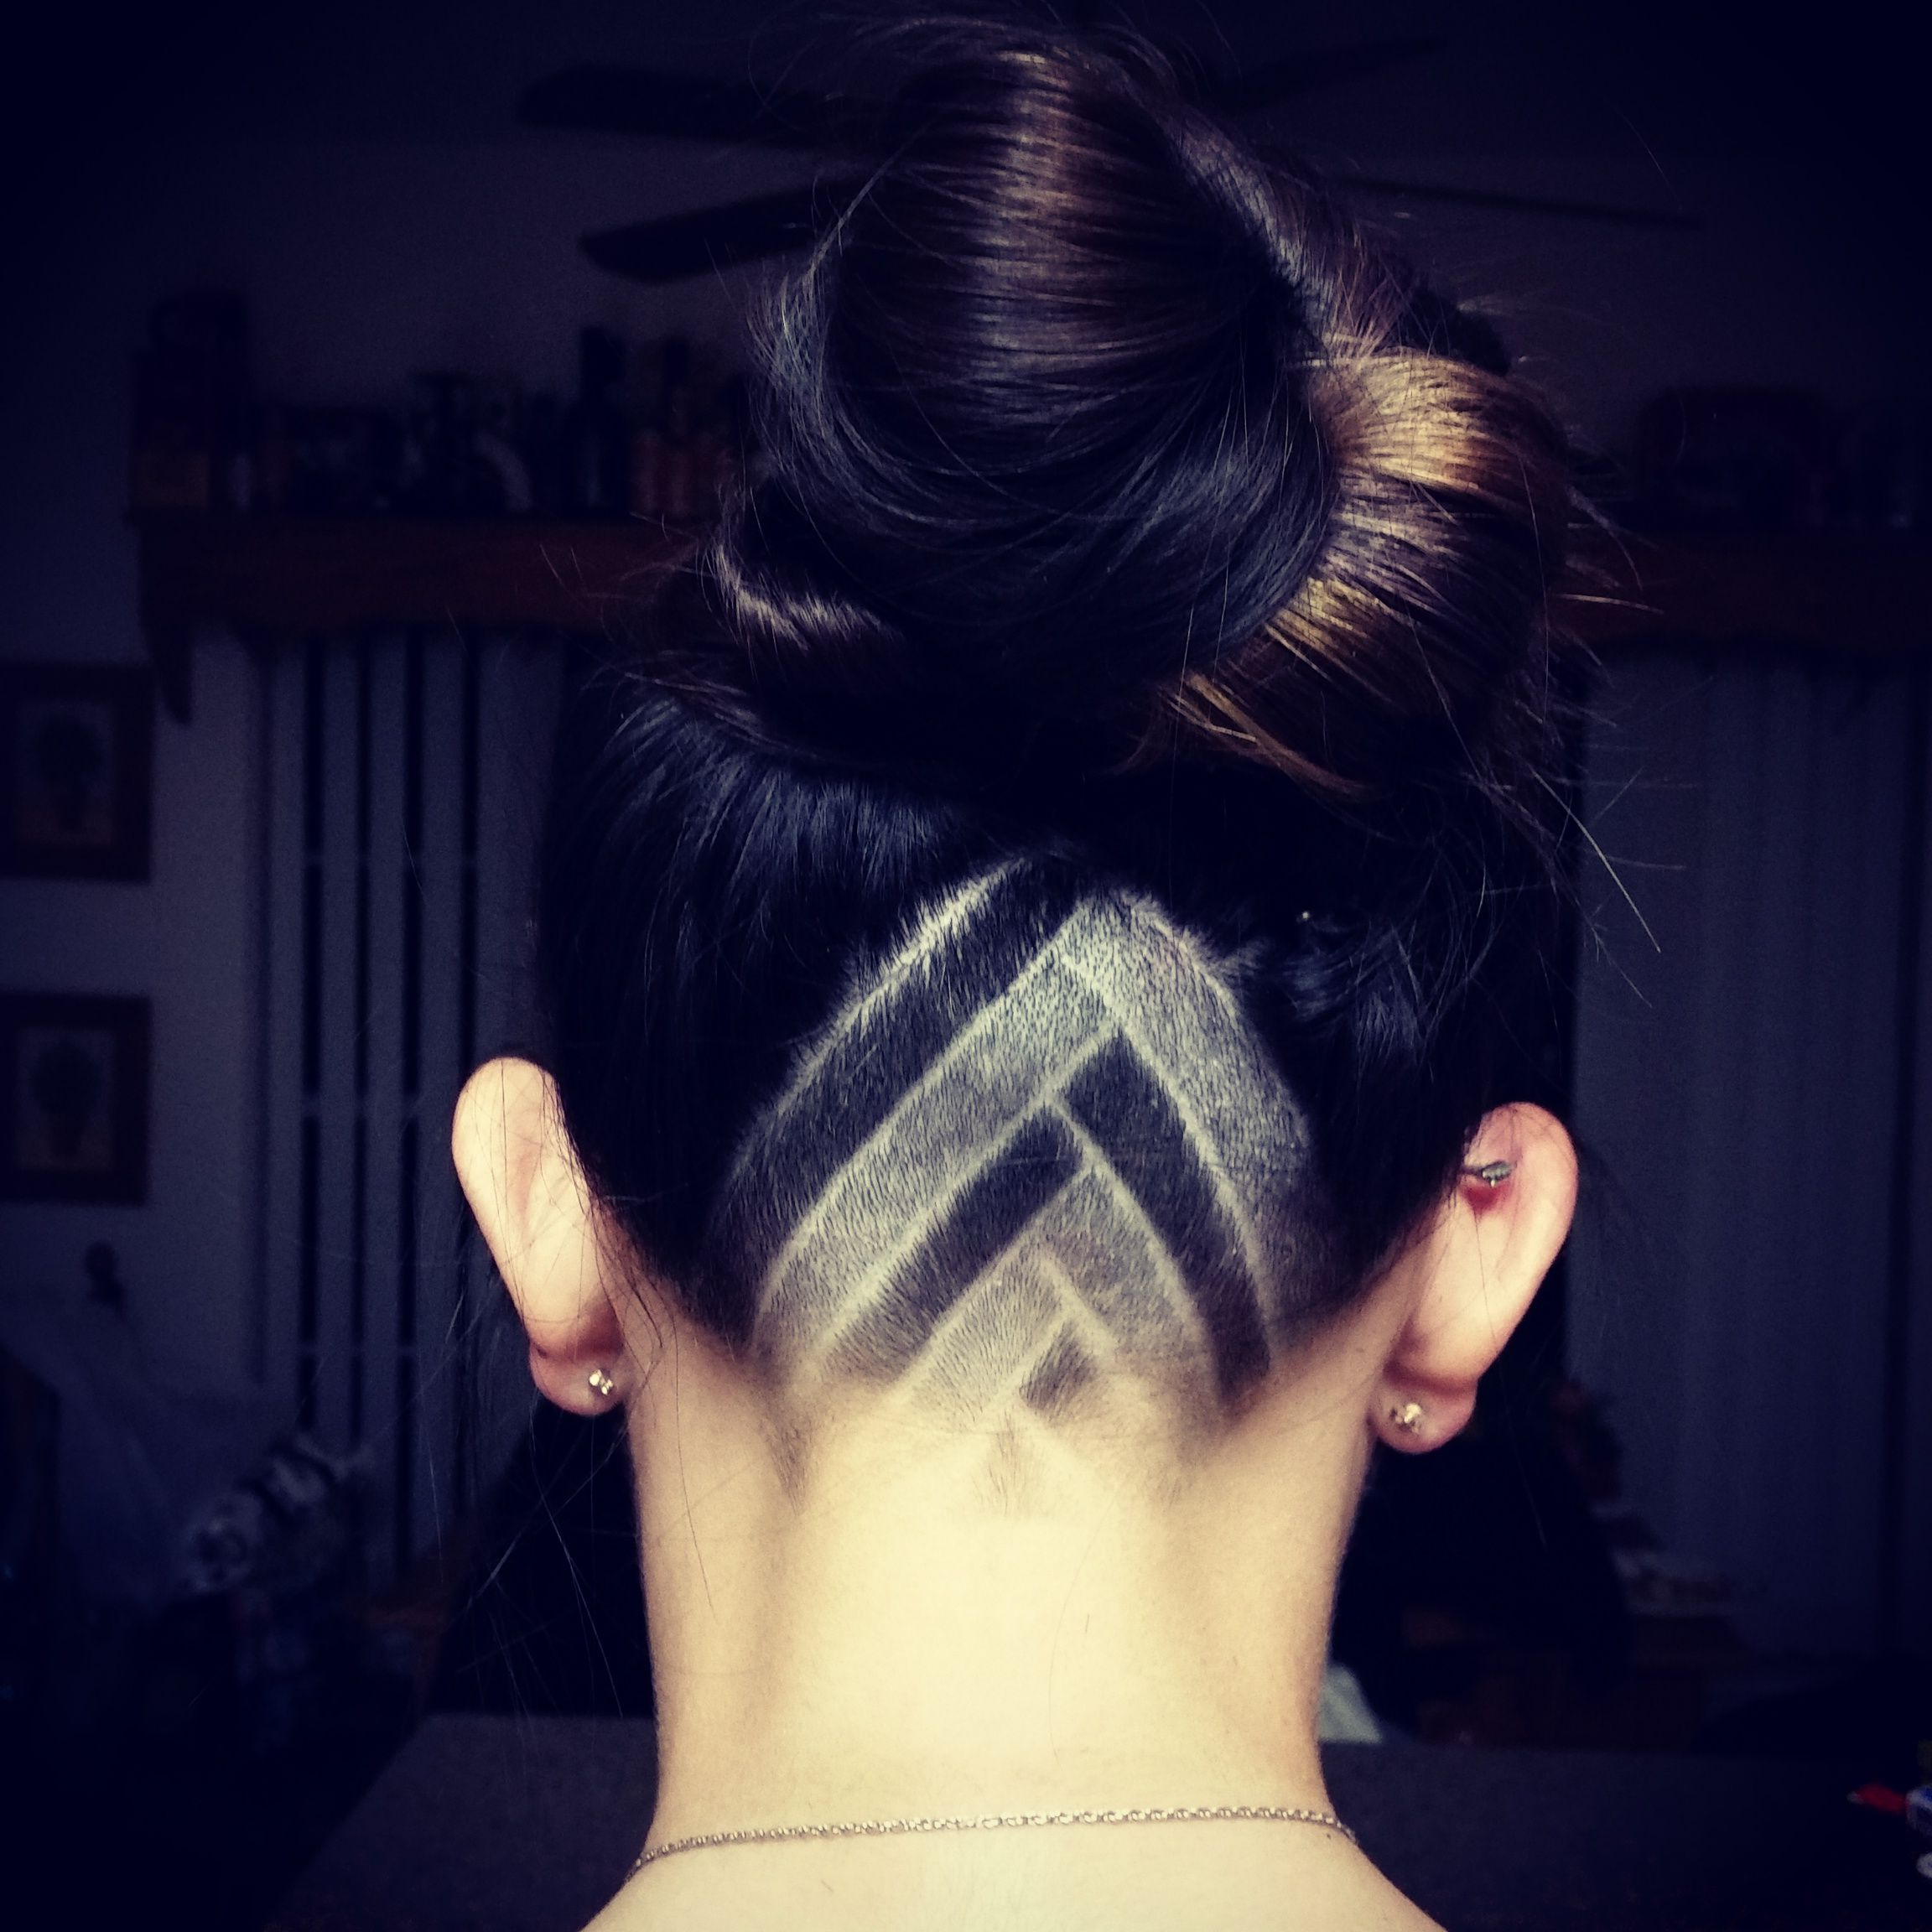 My Favorite Triangle Undercut Design I've Tried So Far Pertaining To Most Current Shaved Undercuts (View 14 of 20)